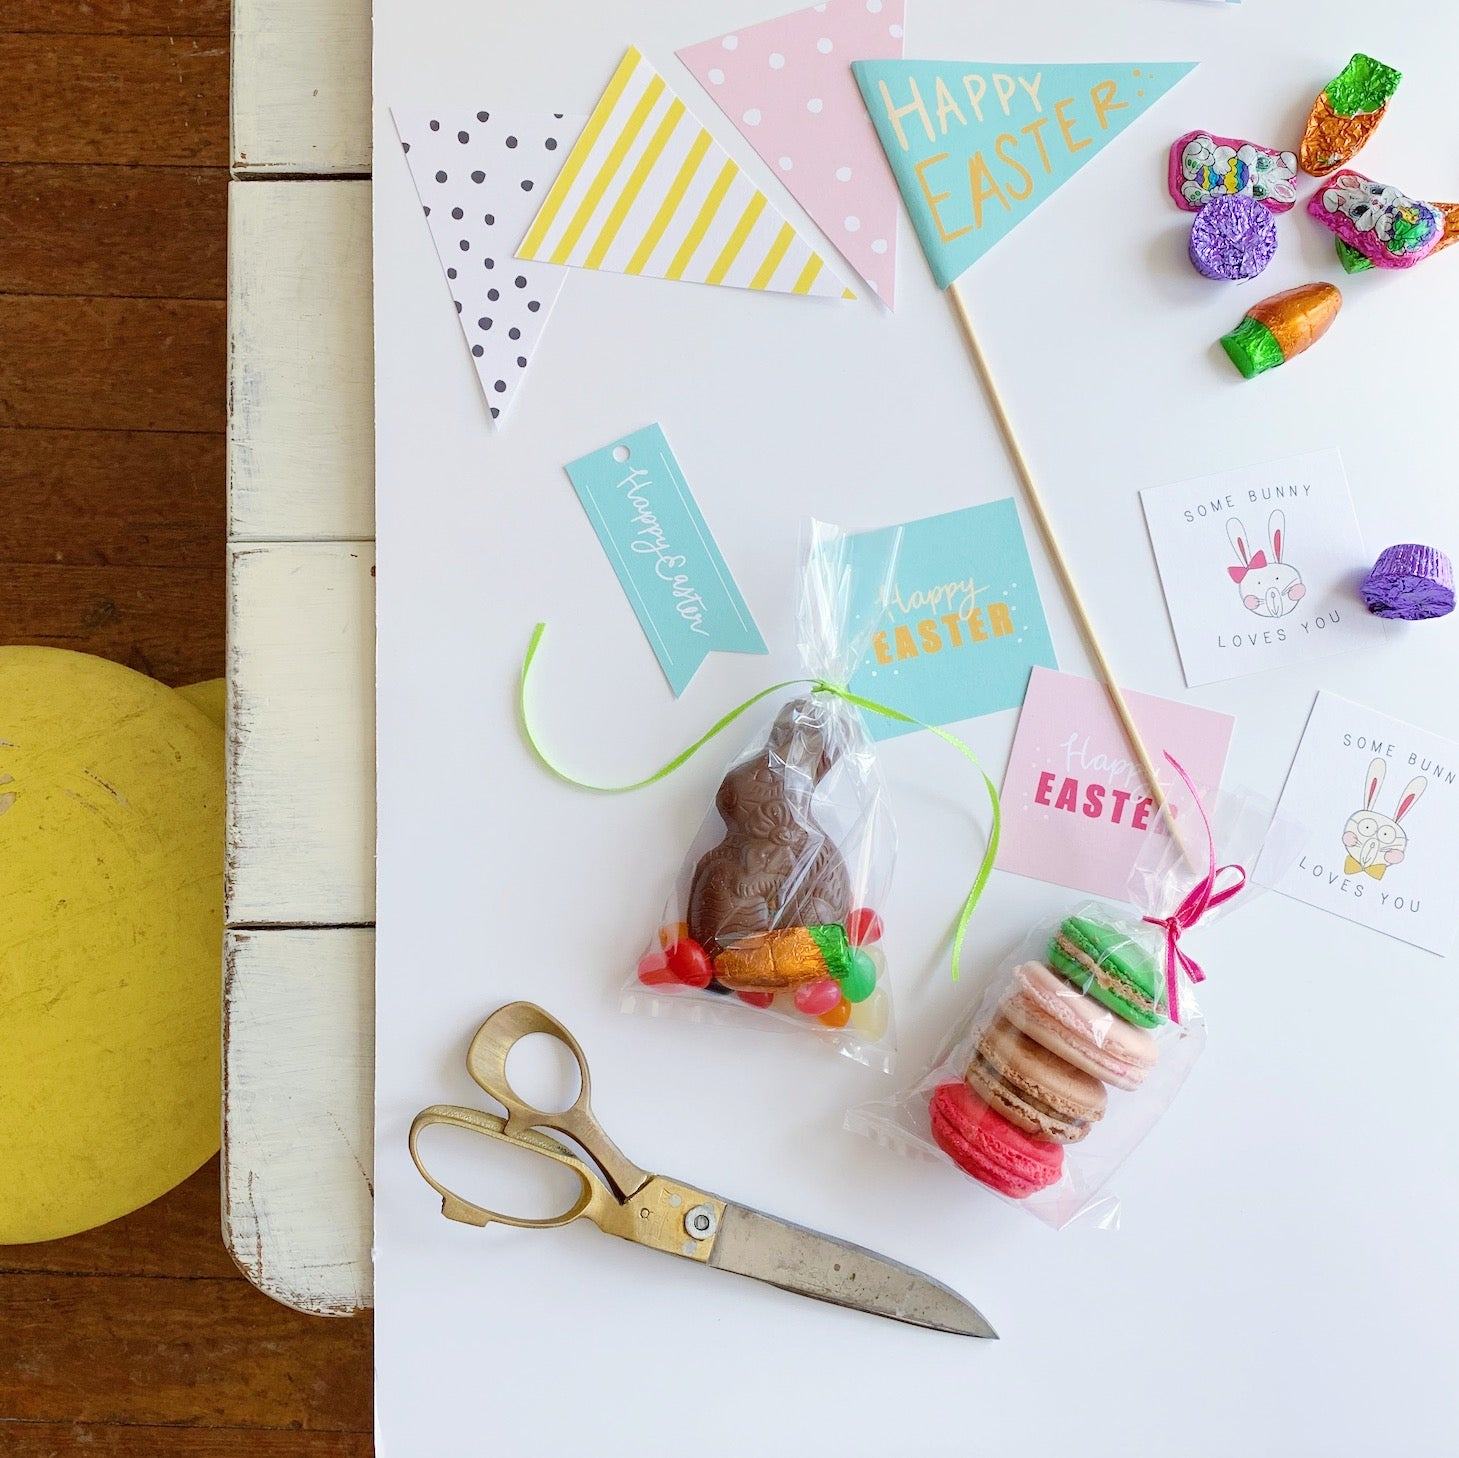 Happy Easter DIY Free Printable